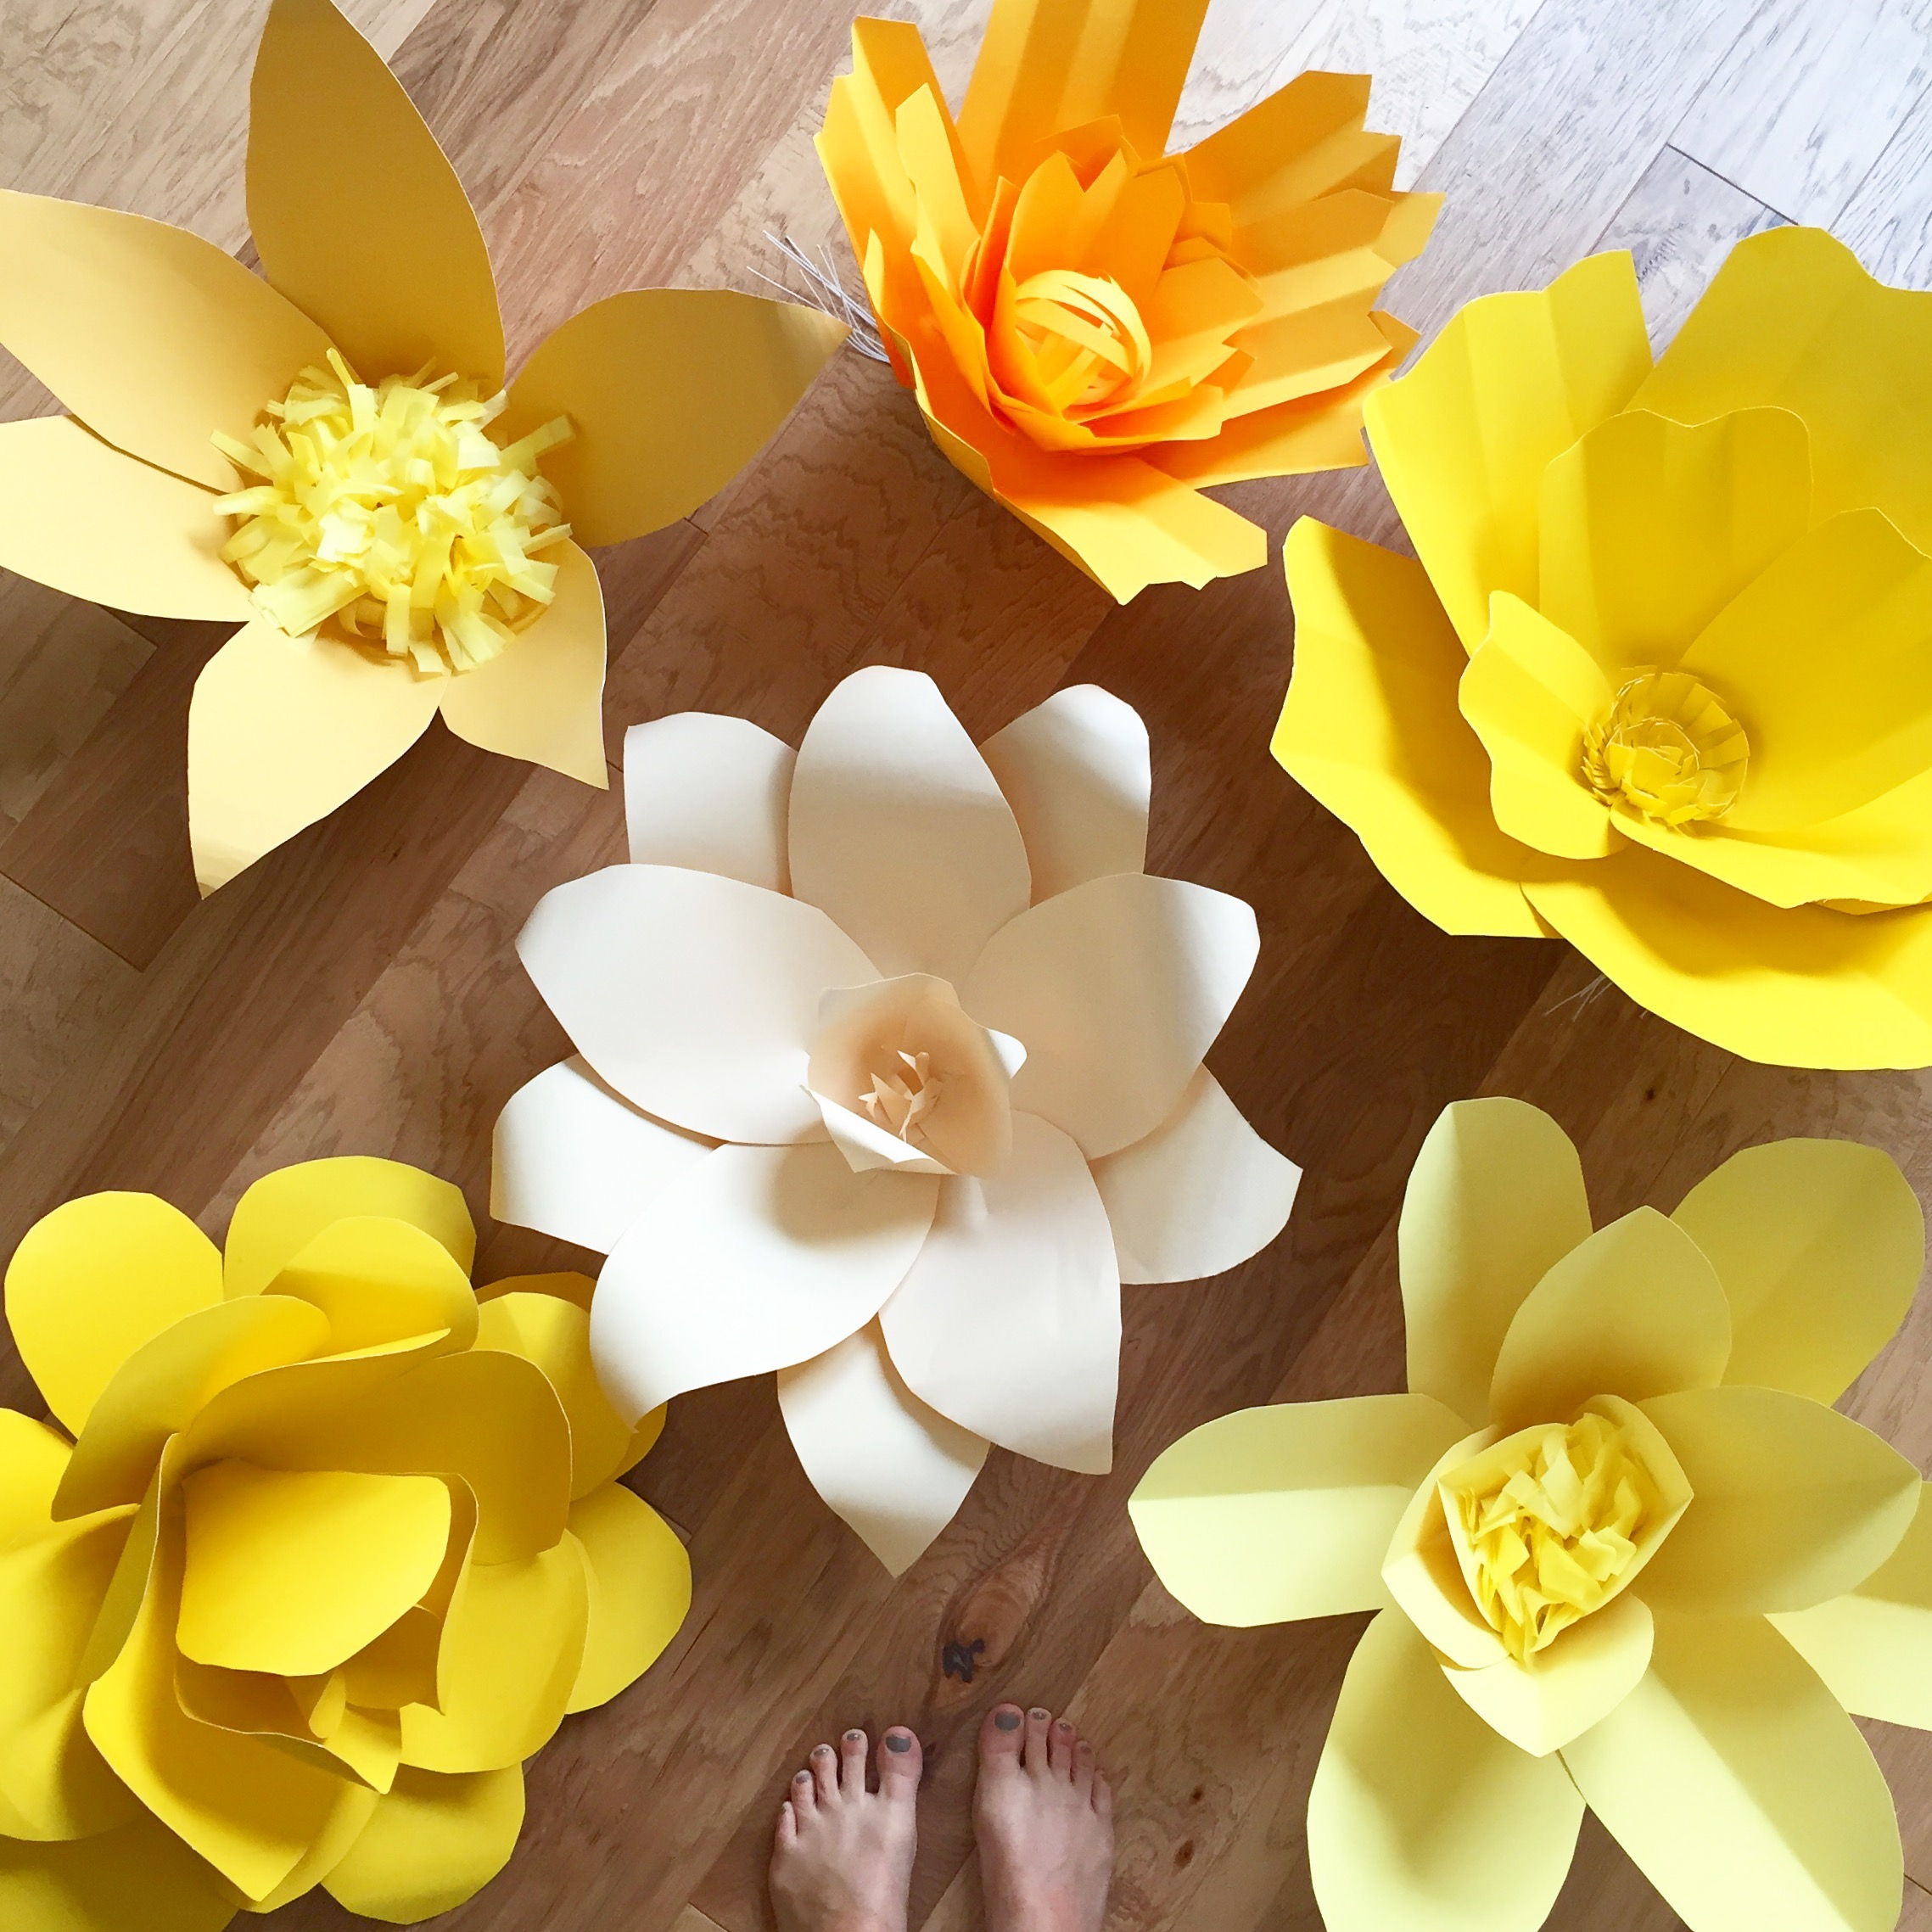 Giant Paper Flowers - One Little Minute Blog